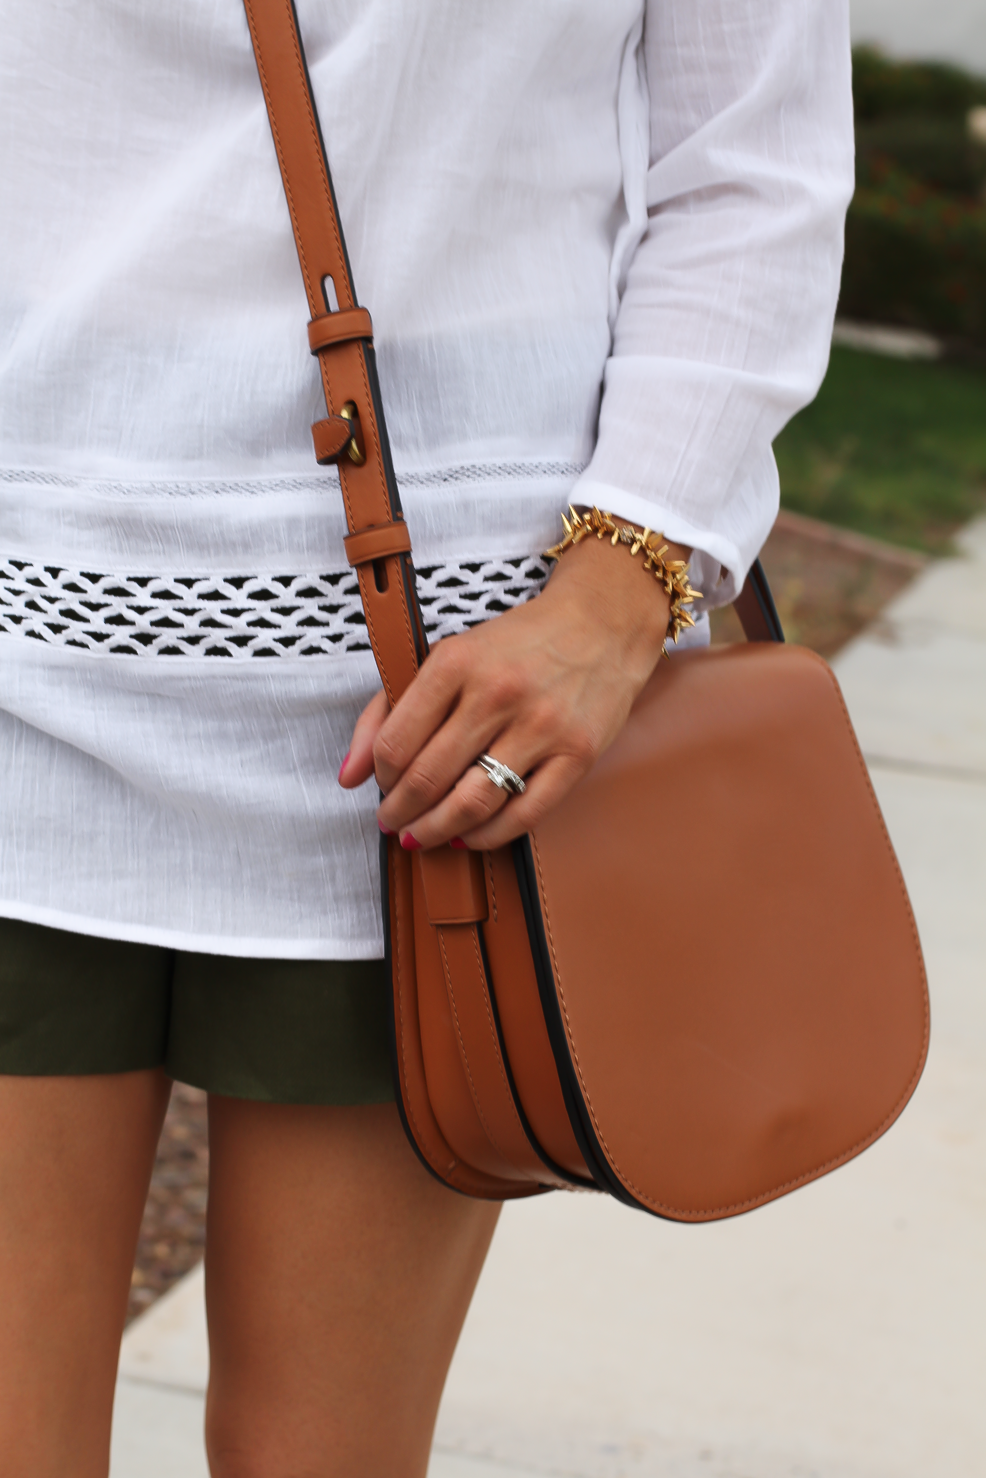 Gauze White Lace Tunic, Green Linen Shorts, Brown Suede Espadrilles, Brown Leather Crossbody Bag, Old Navy, J.Crew, Chloe, Tory Burch 22